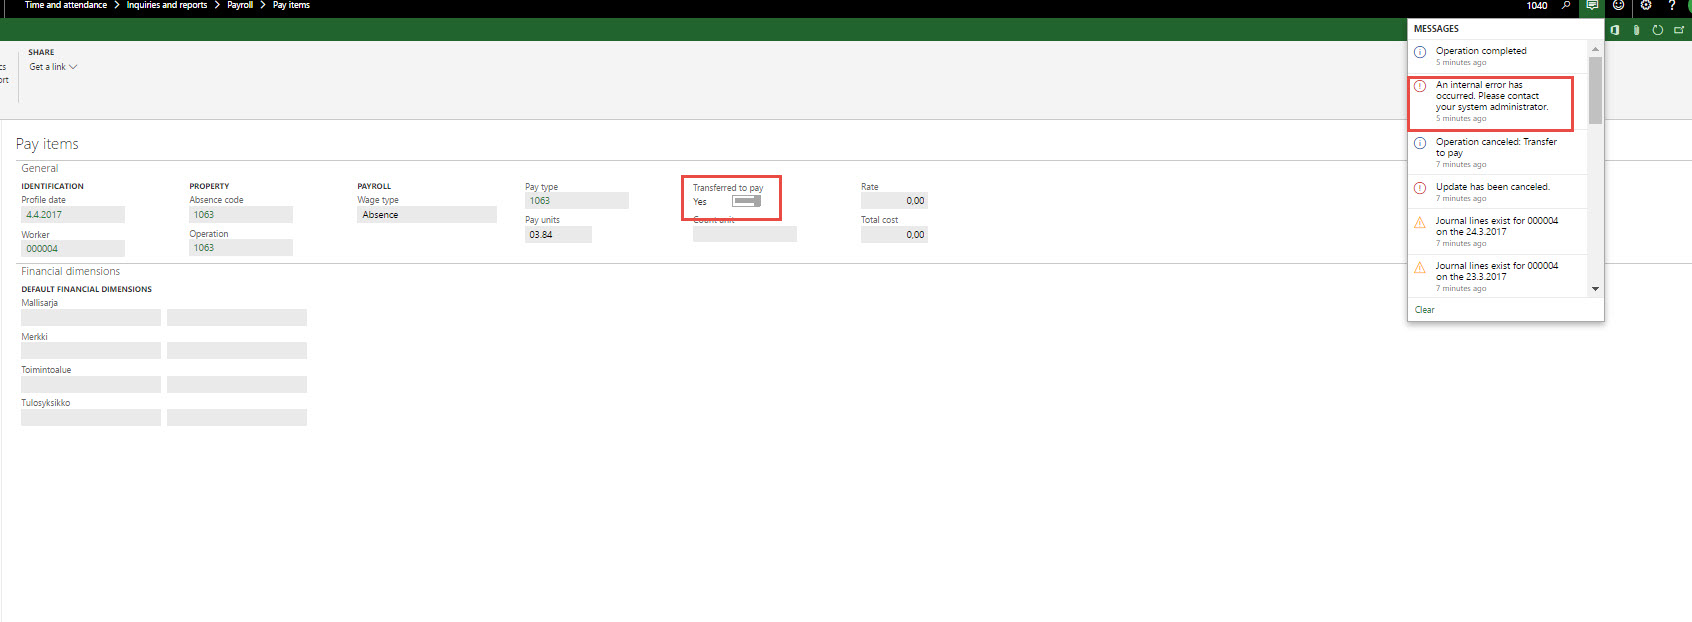 Time and attendance - transfer to pay - Dynamics 365 for